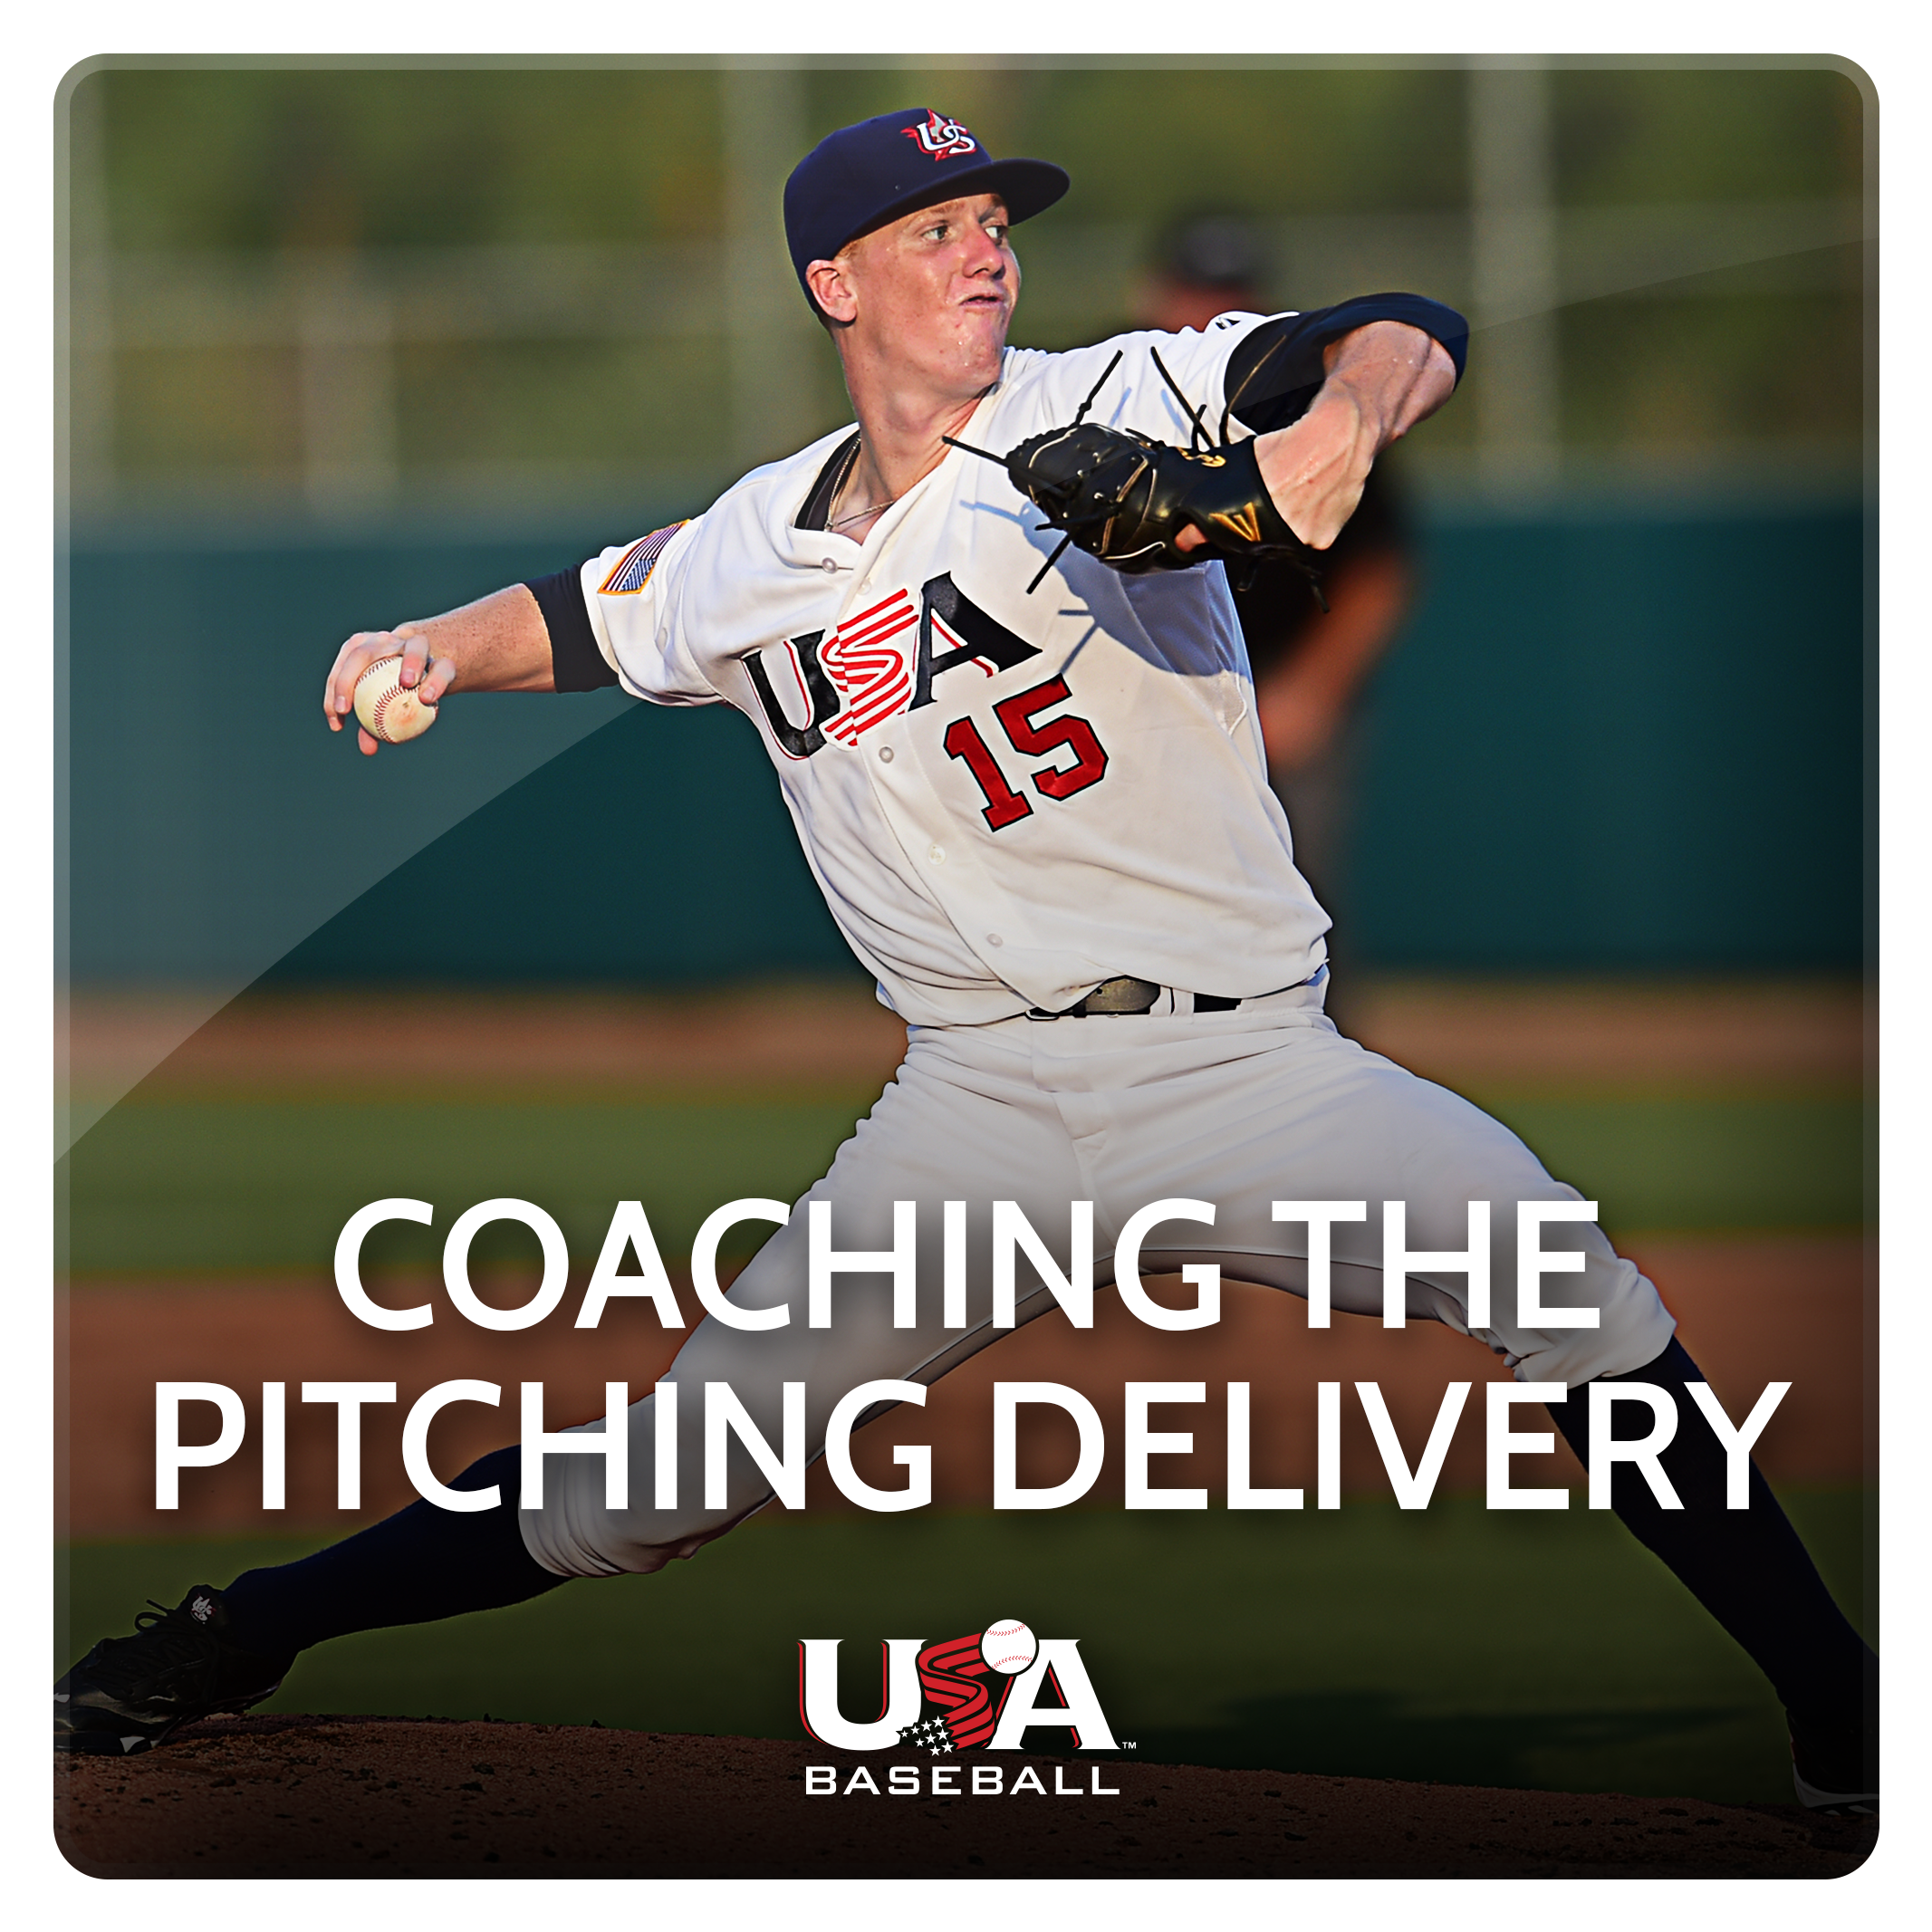 Coaching the Pitching Delivery